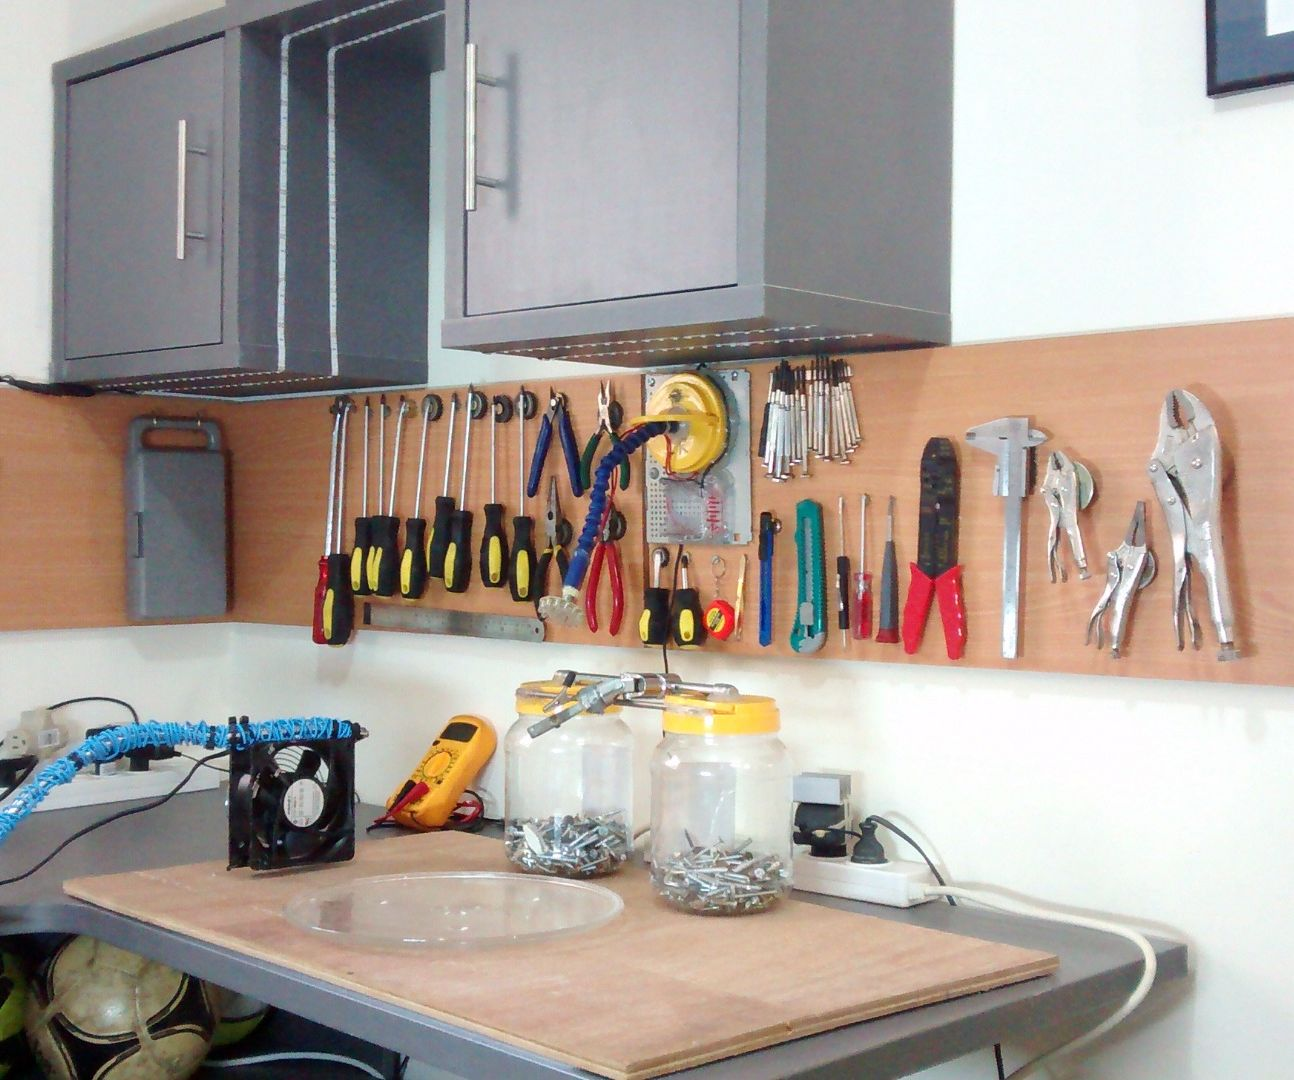 The Ultimate Magnetic Pegboard!